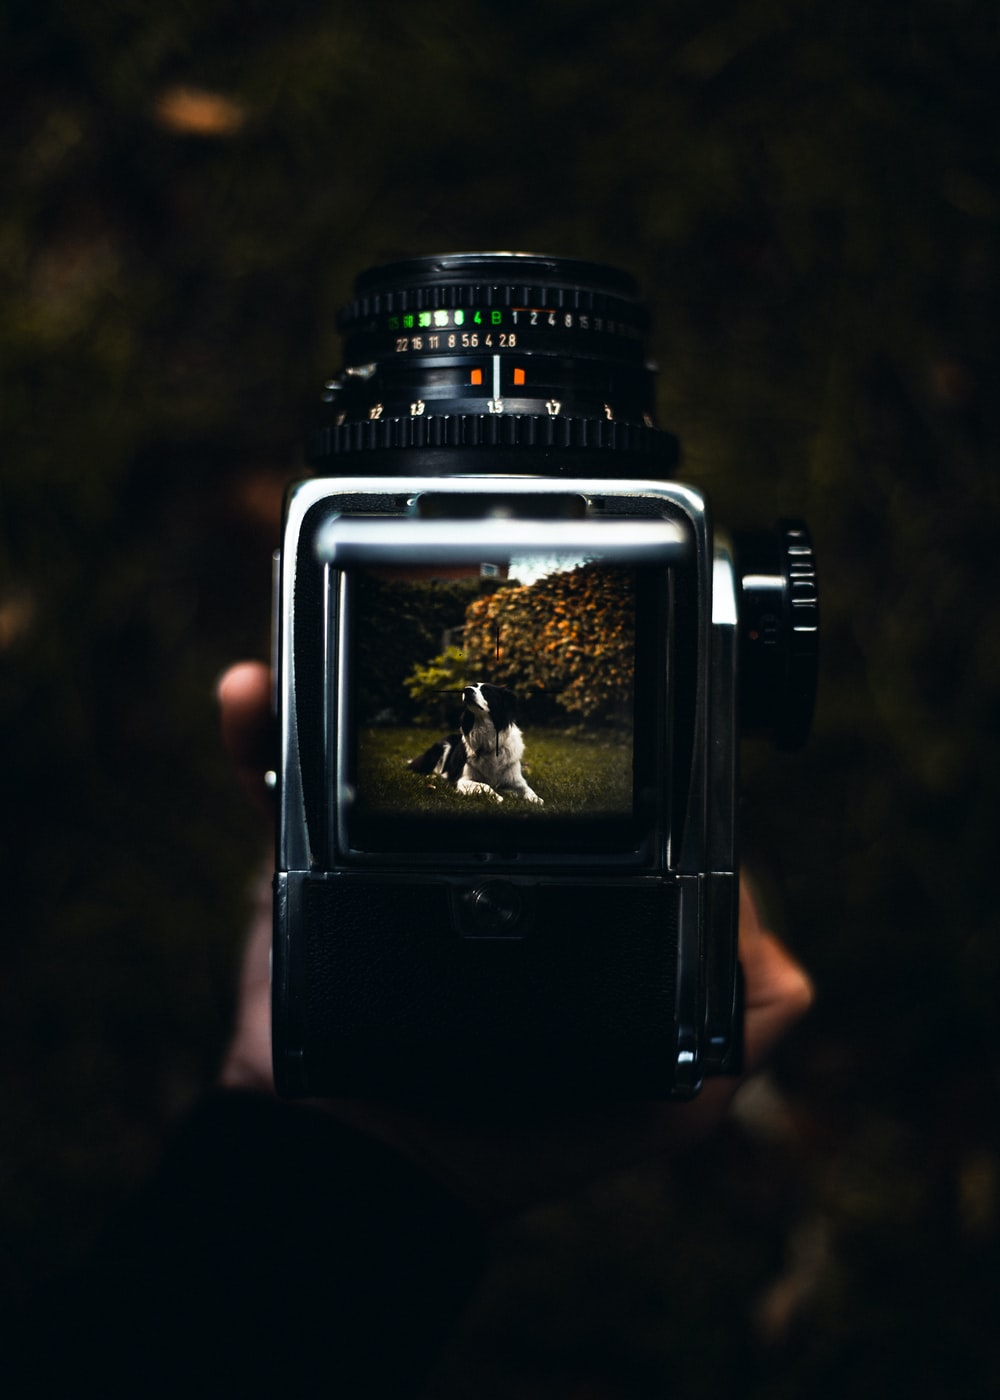 person holding black and gray land camera